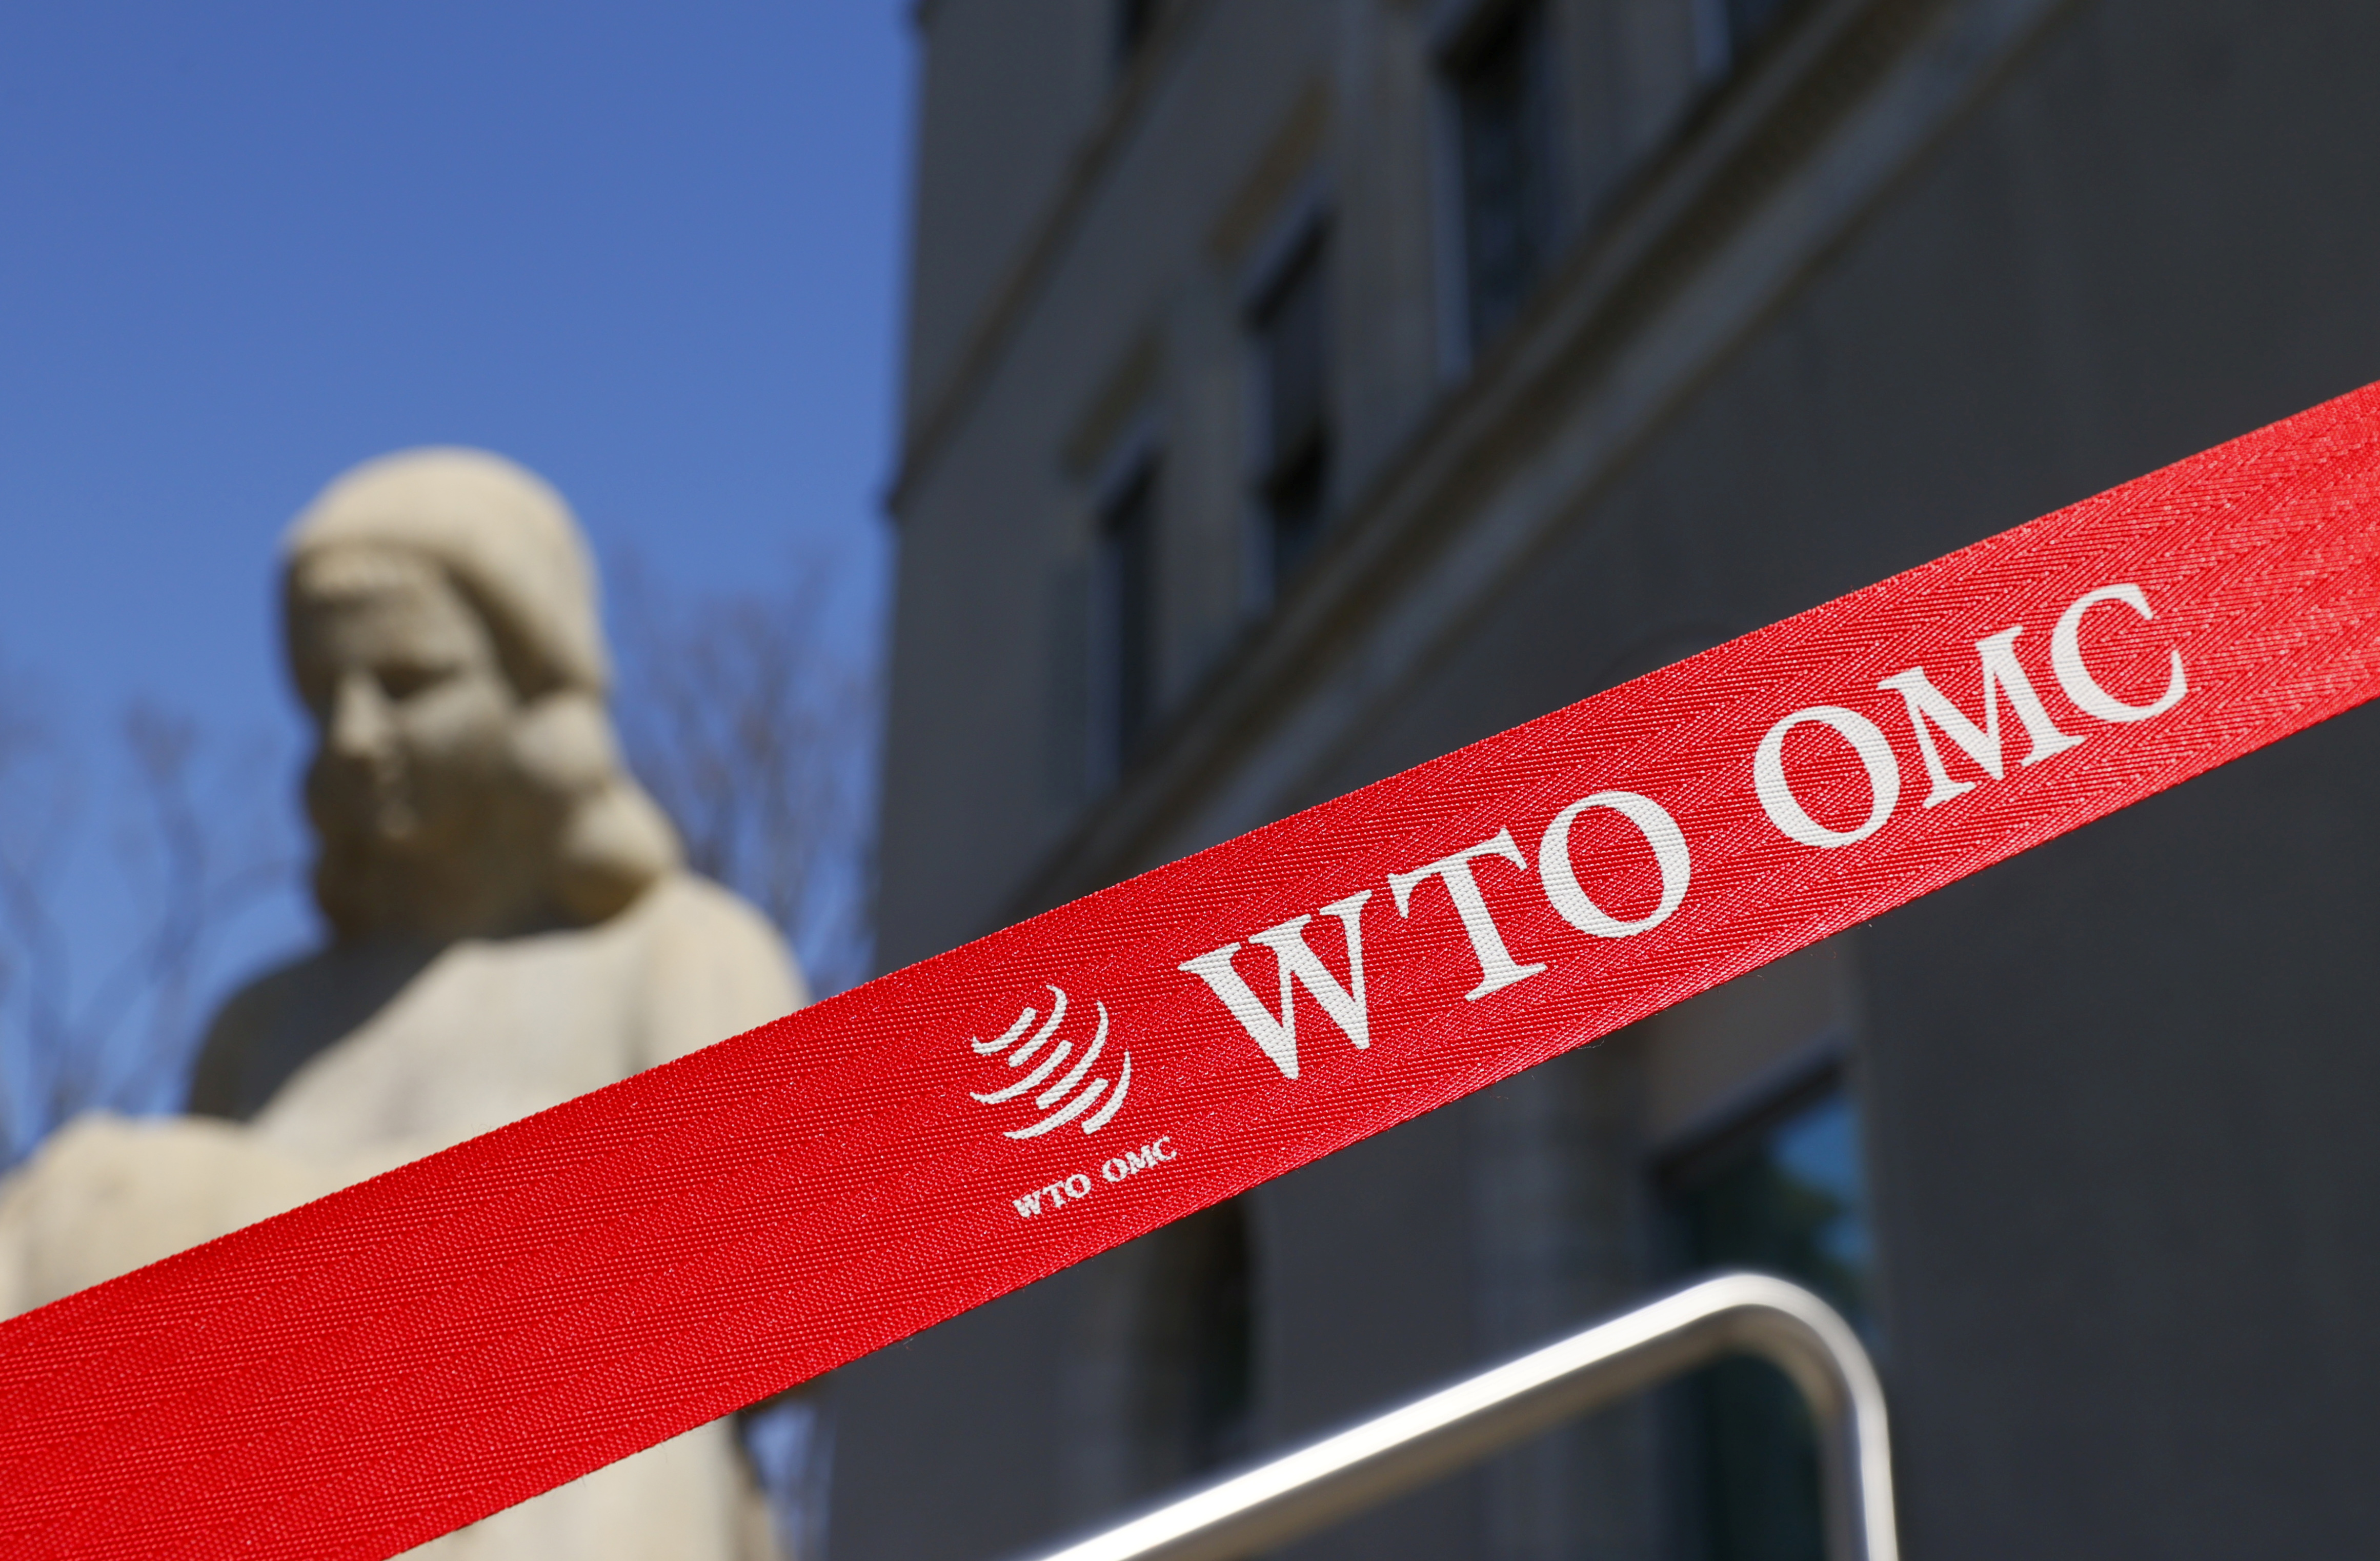 File photo: A logo is pictured outside the World Trade Organization (WTO) building in Geneva, Switzerland, April 1, 2021. REUTERS/Denis Balibouse